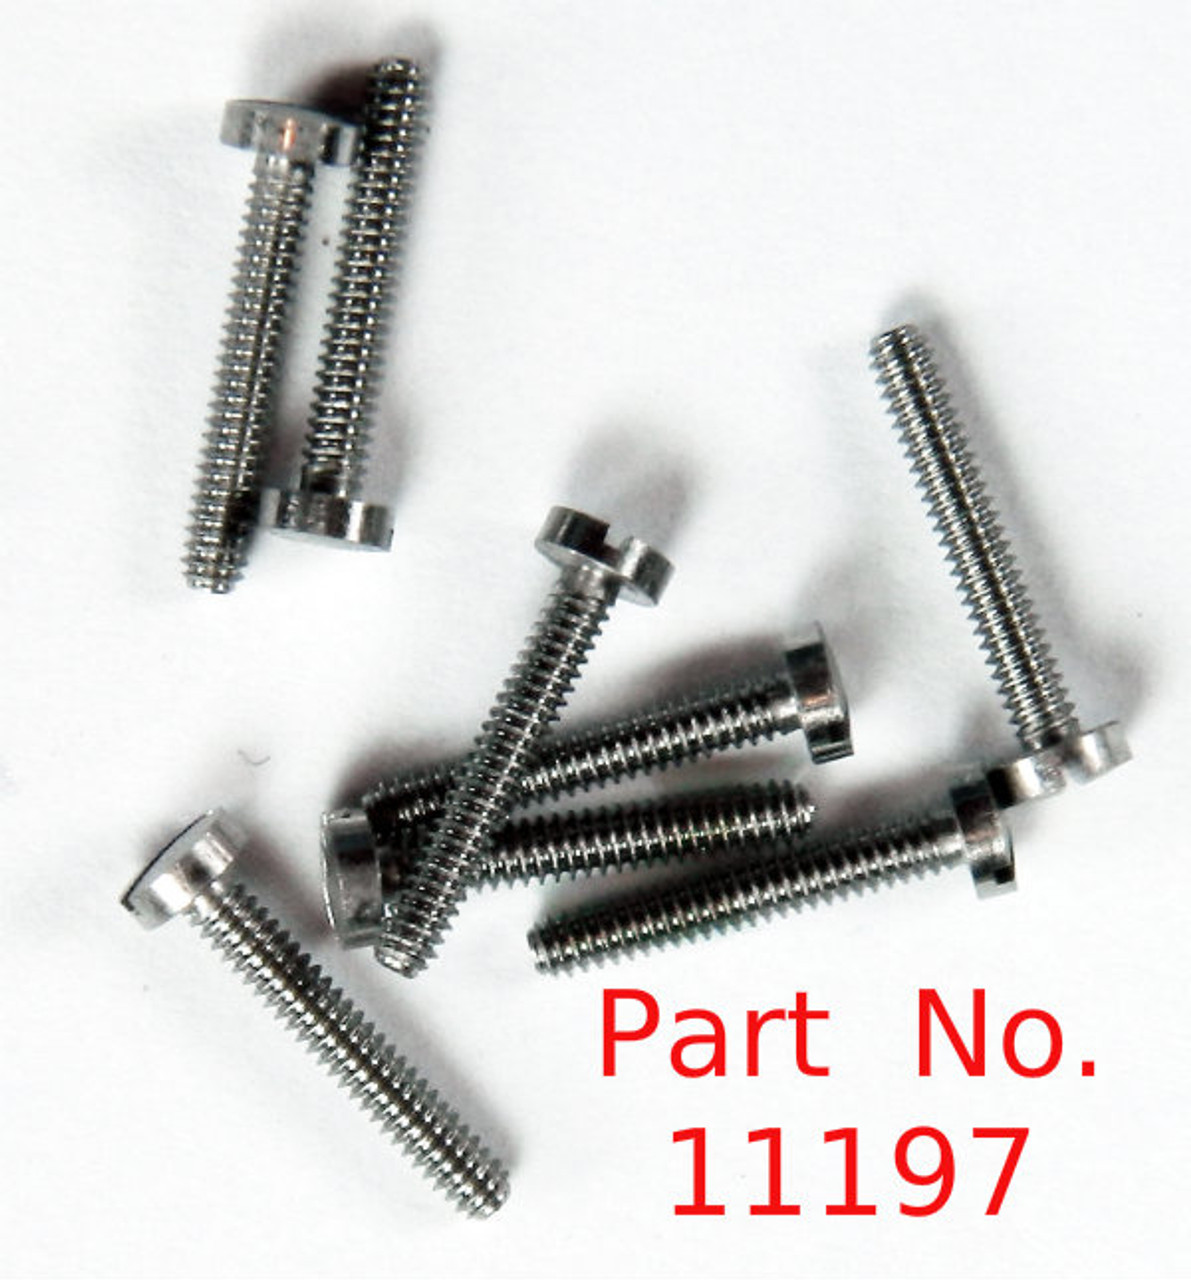 "Machine Screw thread 00-90 (0.052"") head diameter 2.5mm / 0.098"" Overall length is 8/8mm / 0.346"". Material: Stainless Steel part color is silver. Parts packaged per 100 pieces with bulk pricing available. Matting hex nut # 11120."